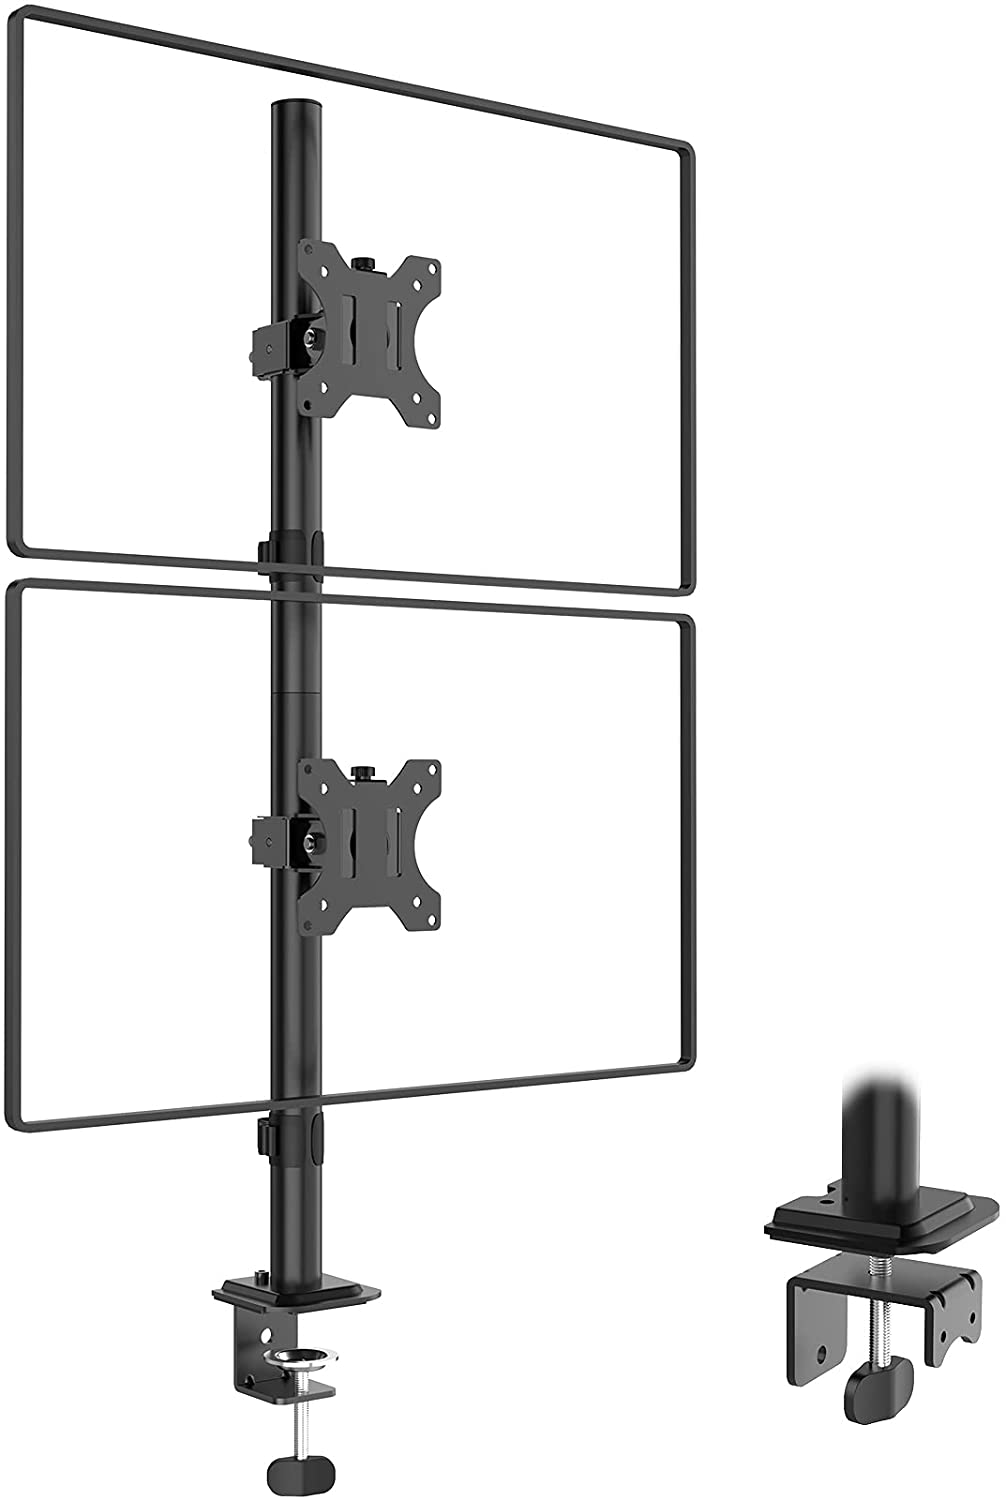 (EU EXCLUSIVE) PUTORSEN Dual Monitor Stand- Vertical Stack Monitor Desk Mount for Two Screens Up to 32 Inch Height Adjustable Screen Supports with Swivel, Tilt, Rotation, C-Clamp and Grommet Bases, Black